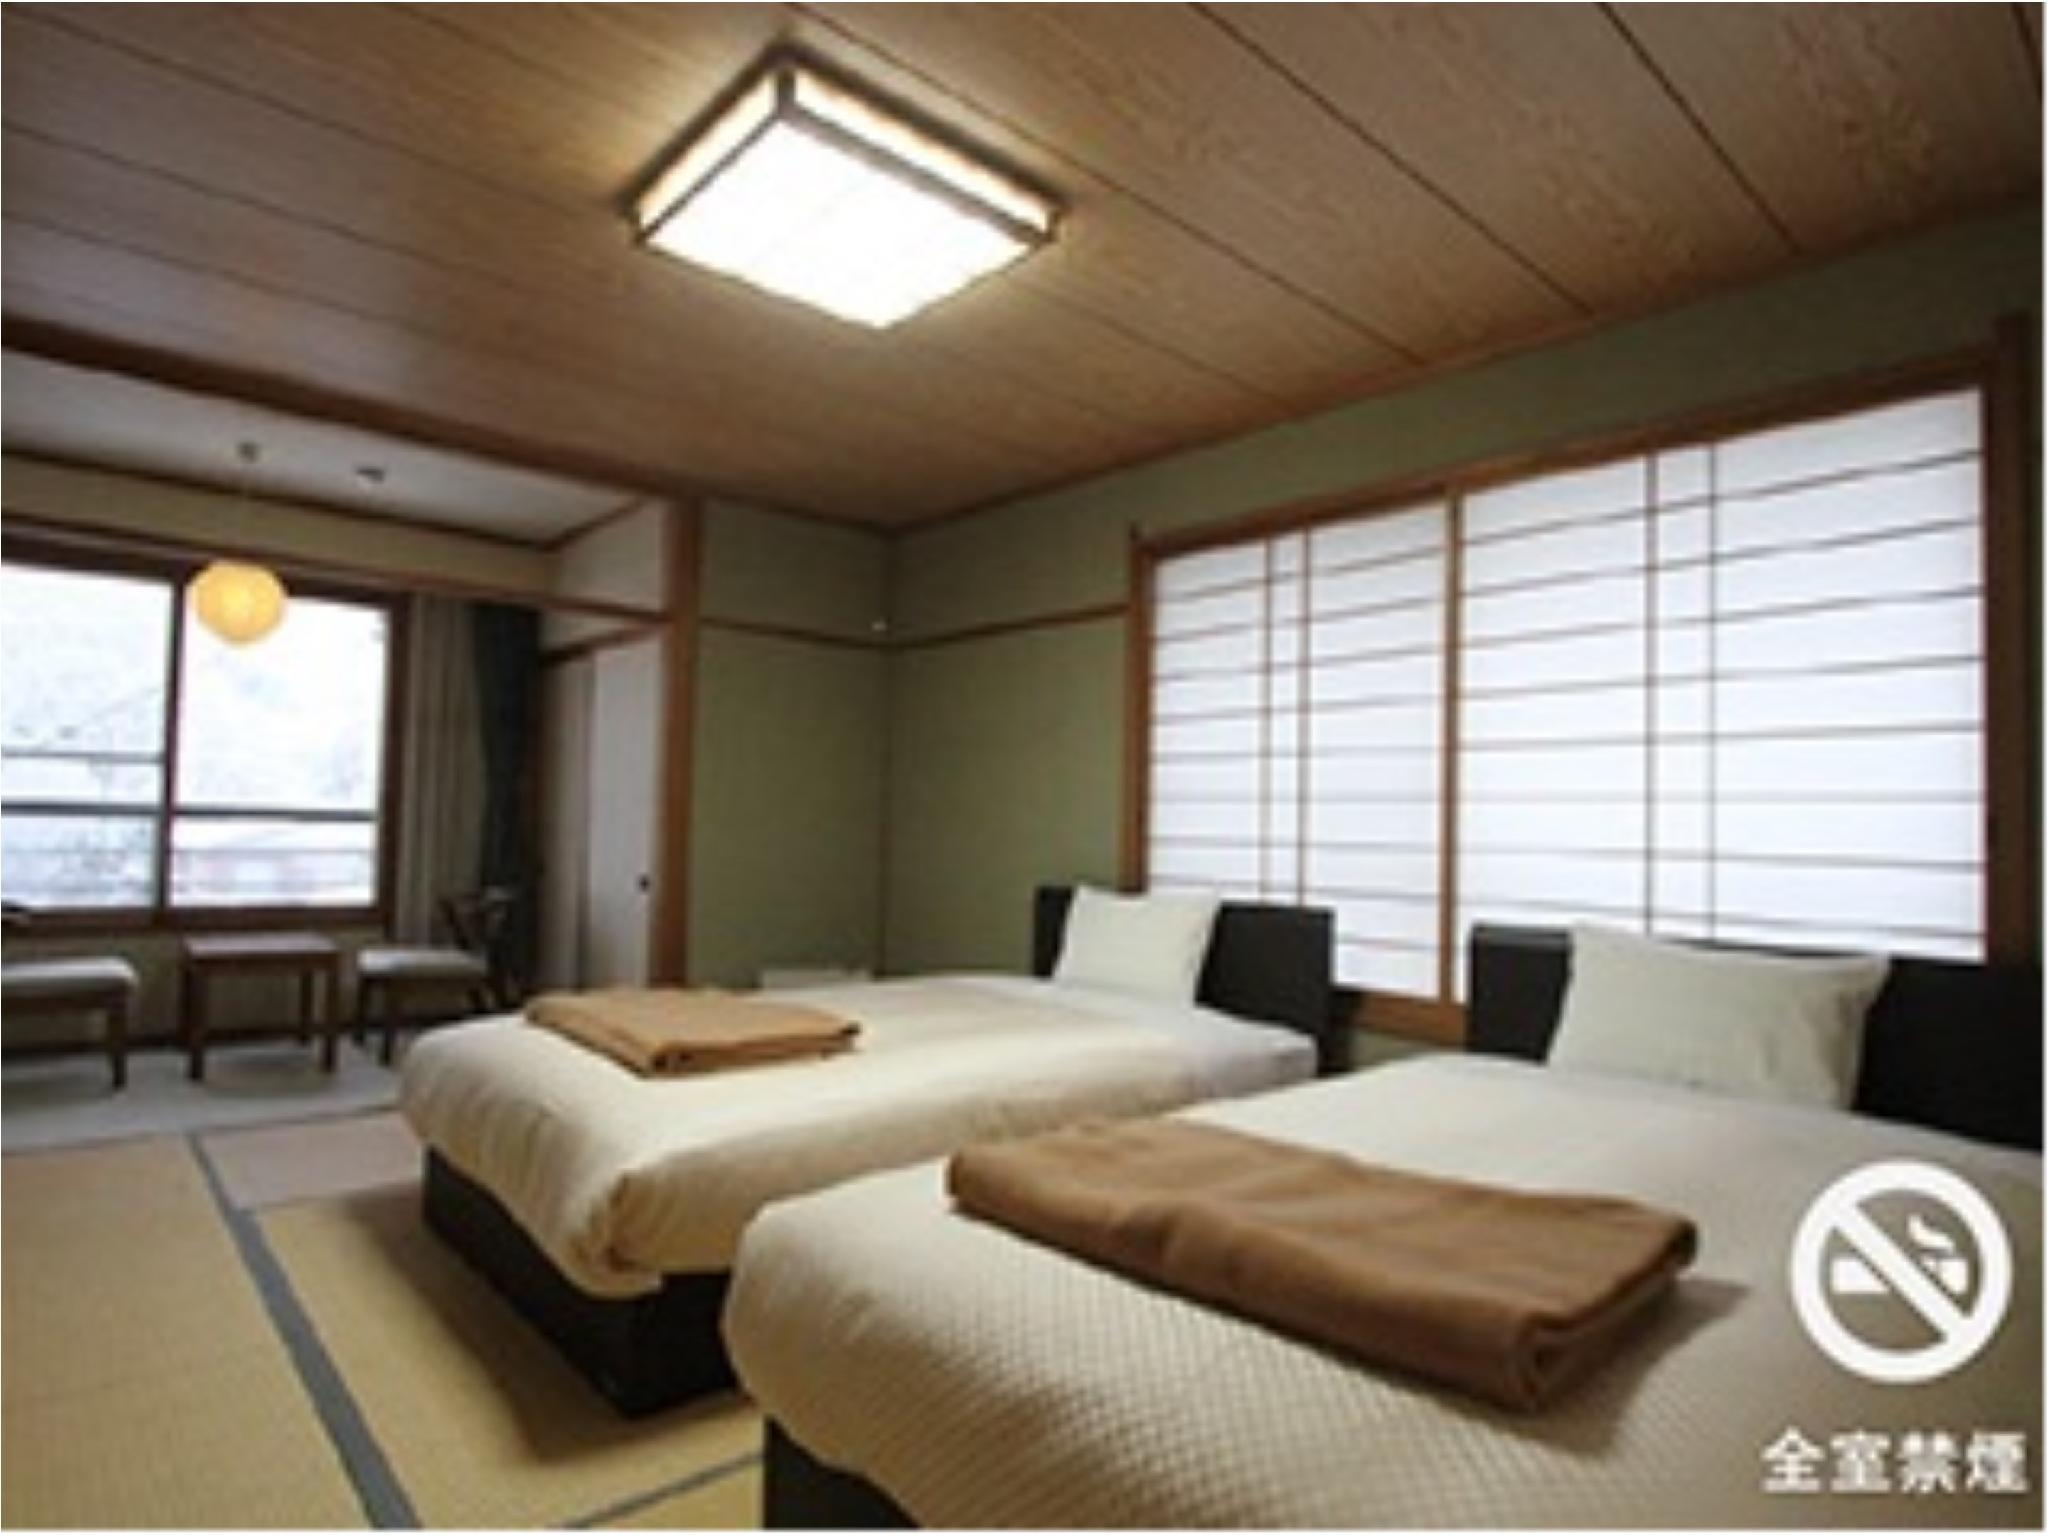 和室 和ベッド 禁煙 |15平米 (Japanese-style Room with Japanese Bed/s)